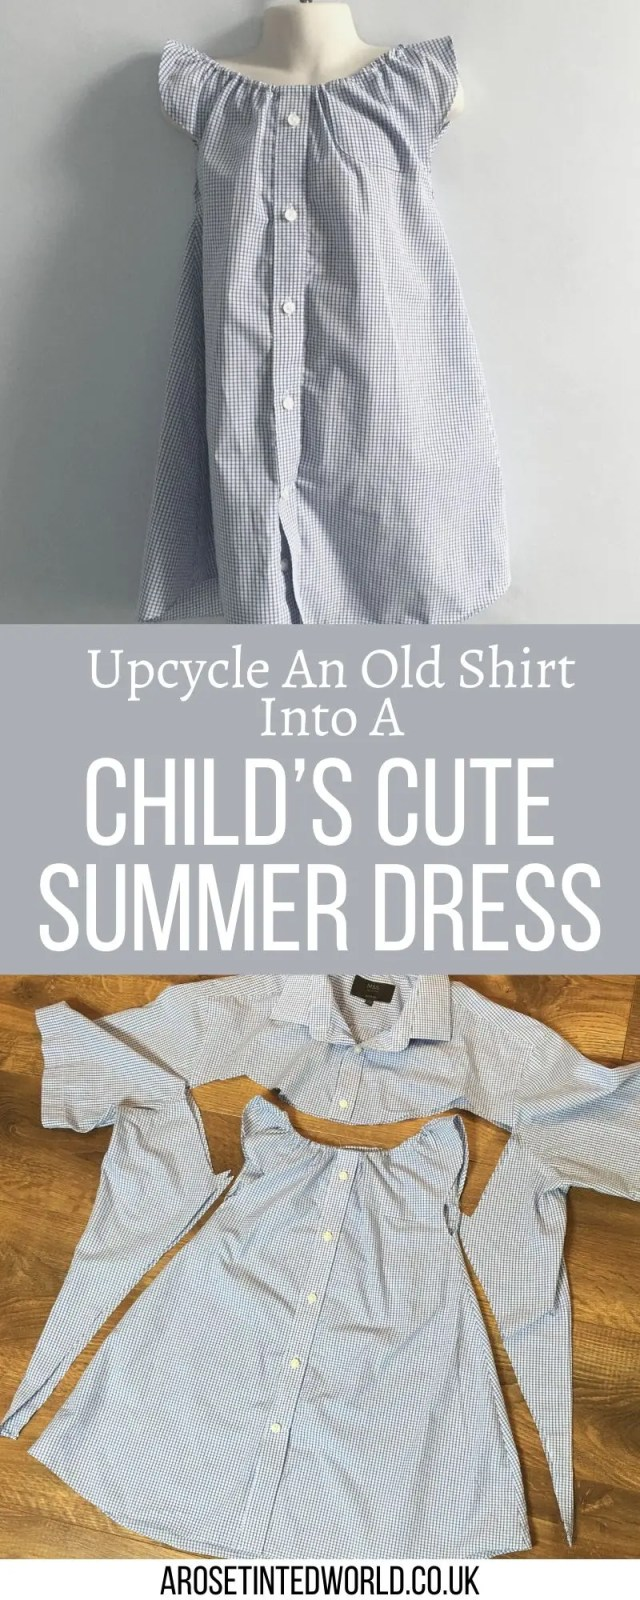 How To Upcycle A Shirt Into A Child's Dress - repurpose a man's shirt into something cute and summery. This step by step sewing tutorial shows you how to make an old shirt into a cute little girl's dress. Reuse old clothes.Reuse, repurpose and recycle fabric with these thoughts and patterns. Upcycle your old clothing and cloth to make fabulous new things #upcycling #sustainableliving #sustainablefashion #sustainable #sustainability #upcycling #upcycleclothes #upcycledclothes #zerowaste #fastfashion #zerowastelifestyle #ecofriendlyideas #recycleclothes #upcycledshirt